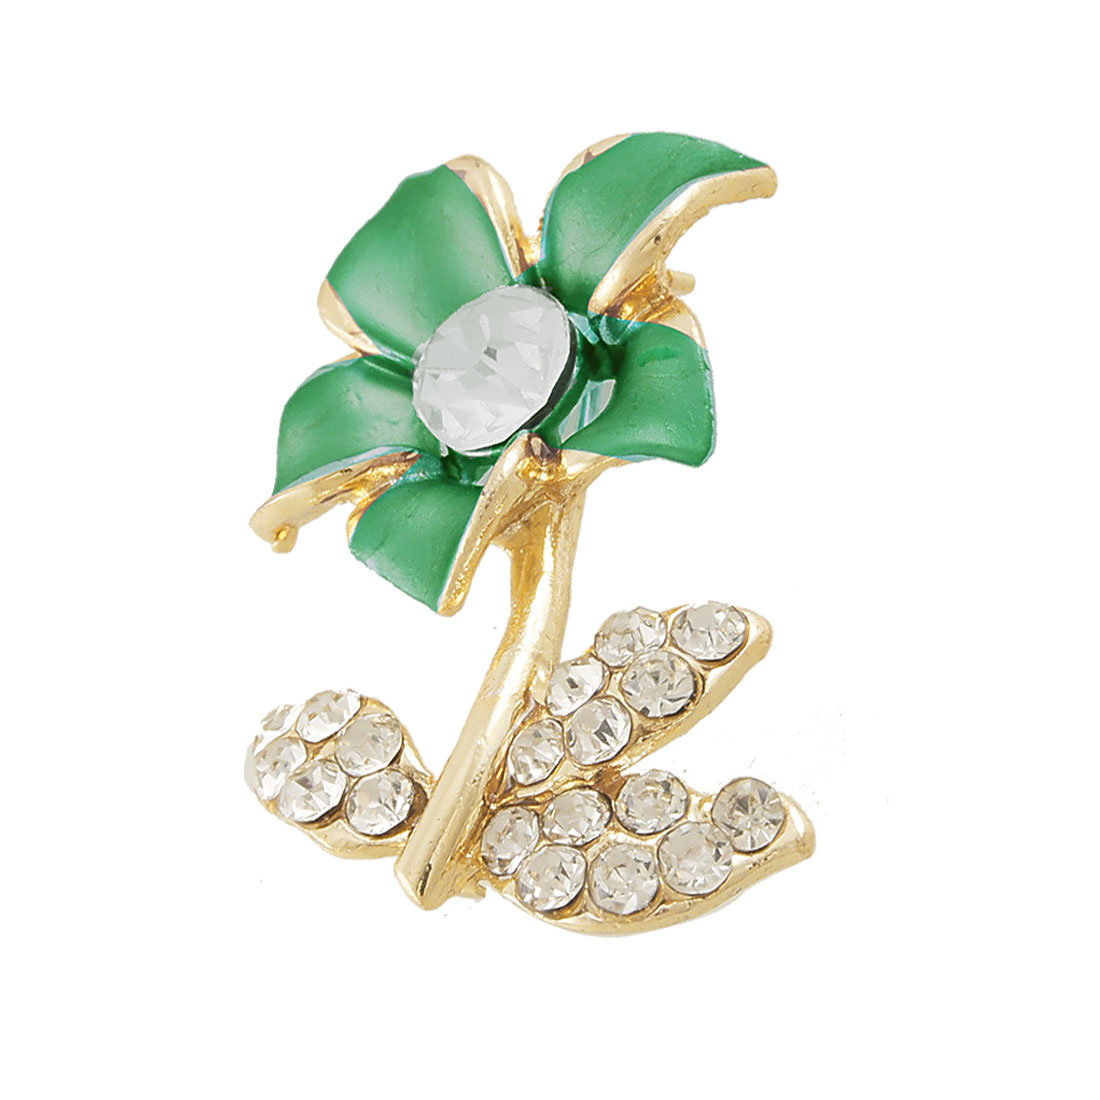 Rhinestone Decor Green Flower Design Safety Pin Brooch Broach